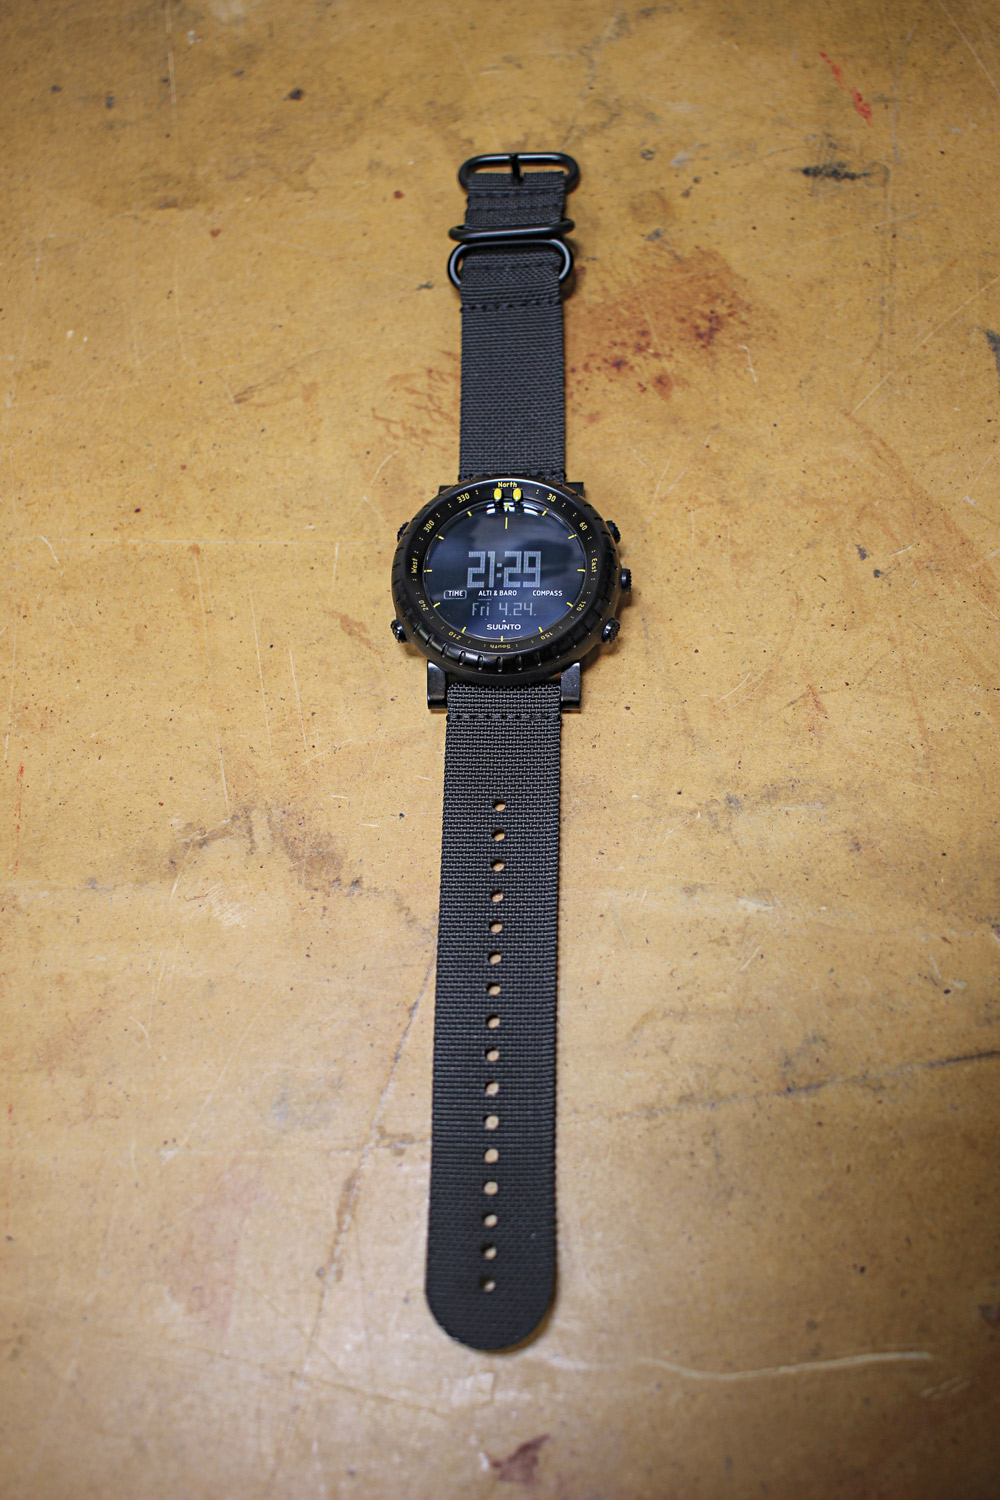 he Suunto Core came with a NATO-style web wrist strap.